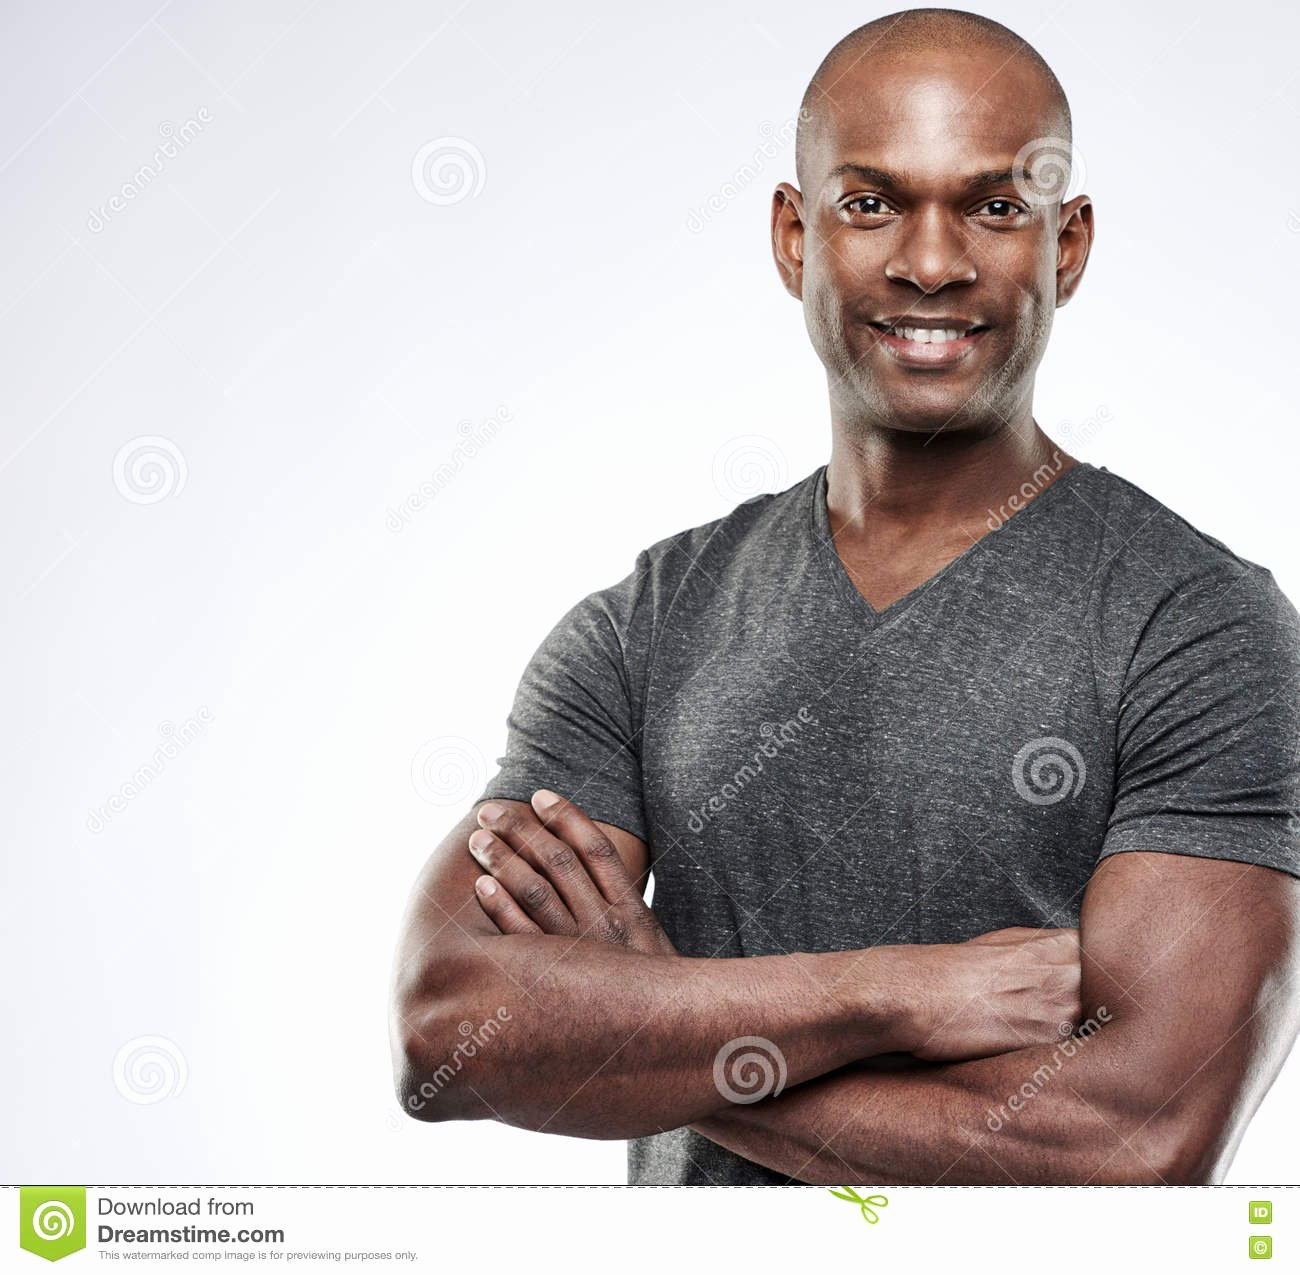 Americanization is tough On Macho Inspirational Handsome Muscular Man with Arms Folded Royalty Free Stock